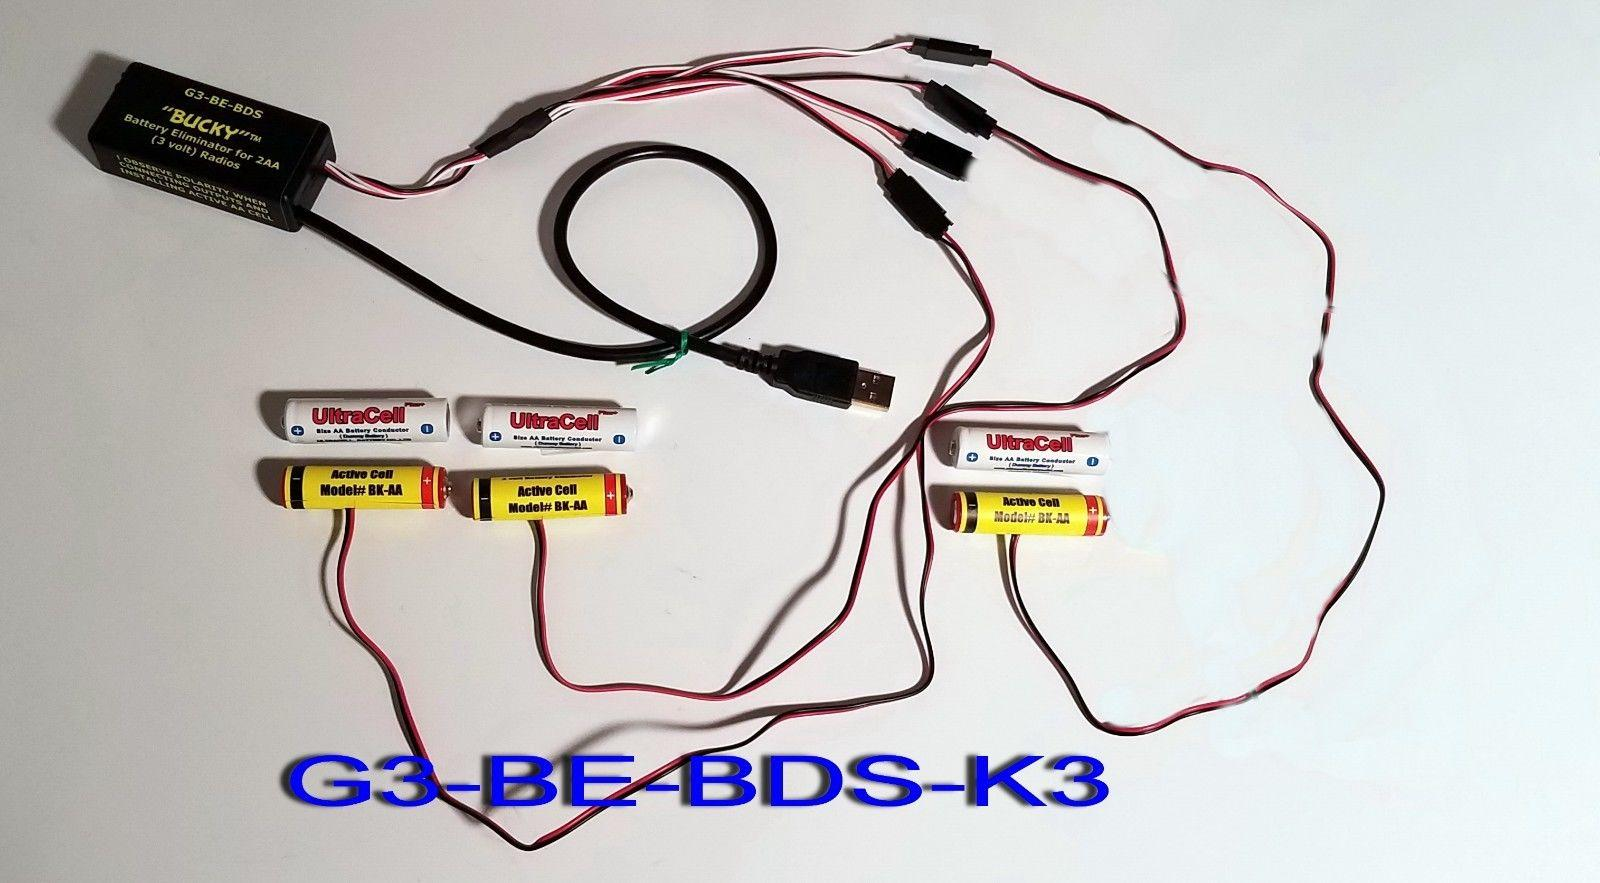 Revelrobs Content Jwsoundgroup Together With 1 4 Inch To Xlr Wiring Diagram As Well Trs Cable If I Know This Ahead Of Time Can Easily Connect A Zoom Or Tascam The Stereo Out Phones Record My Audio For